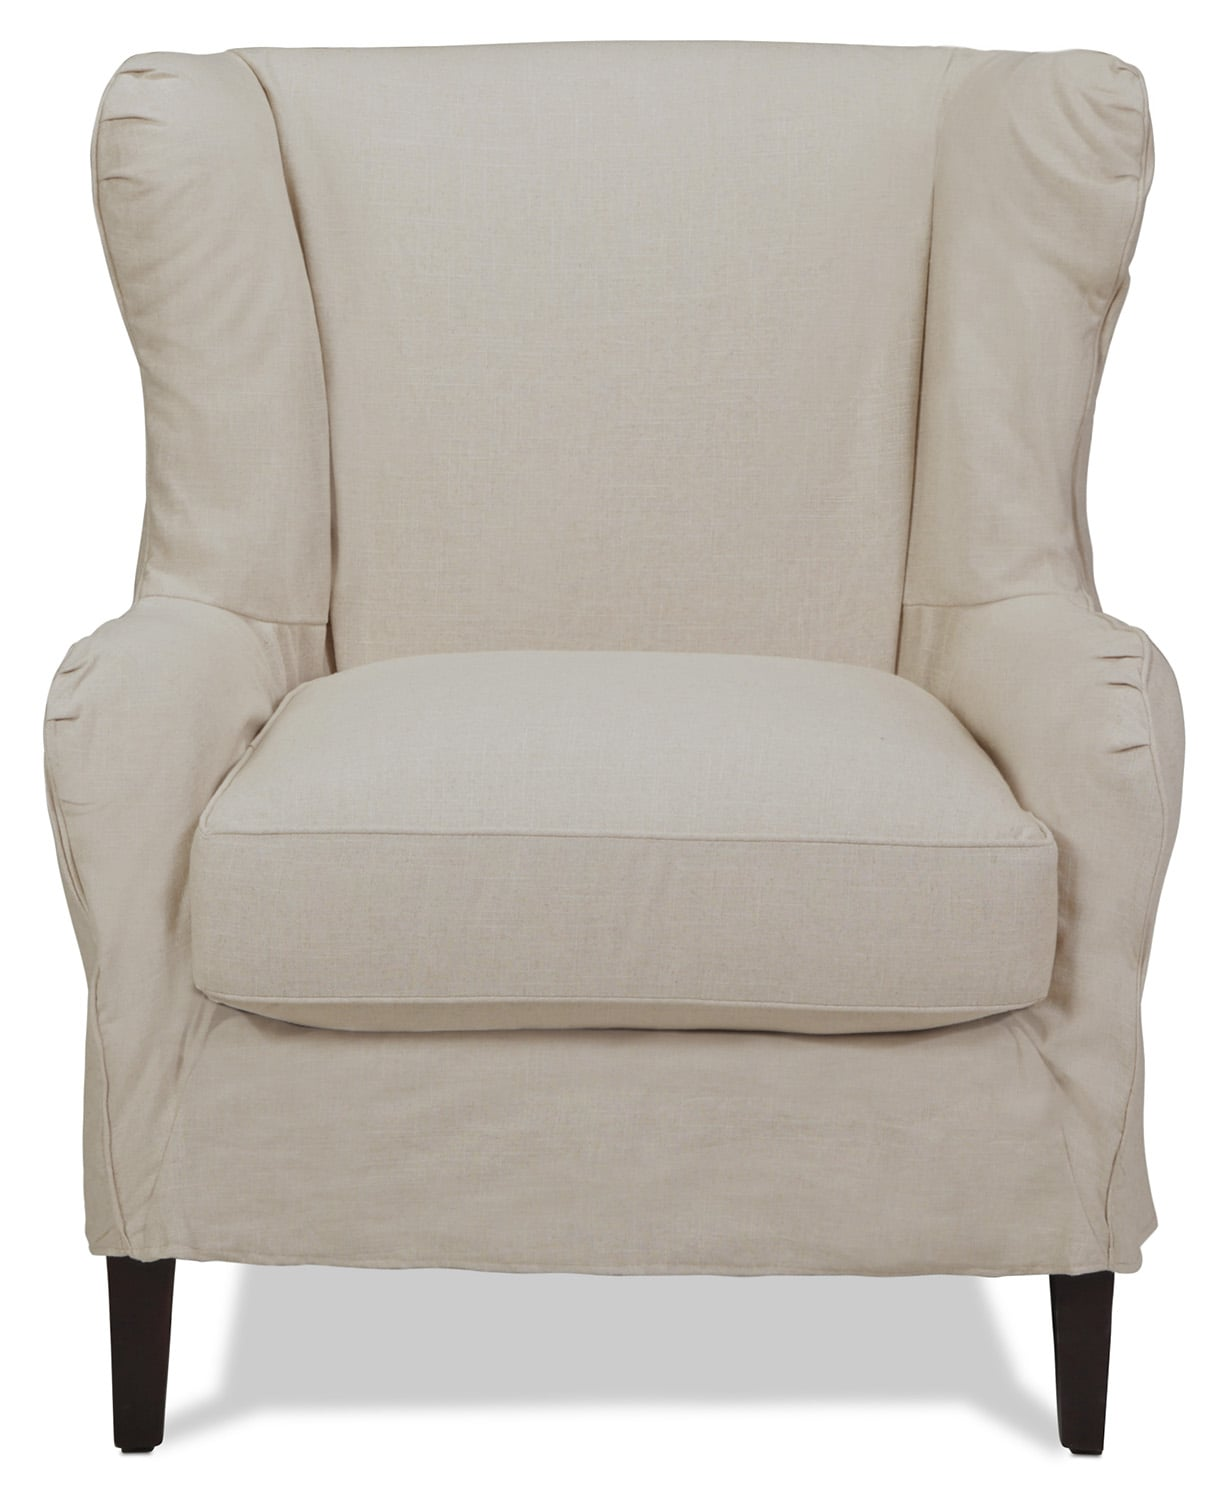 Stone Harbor Accent Chair - Natural